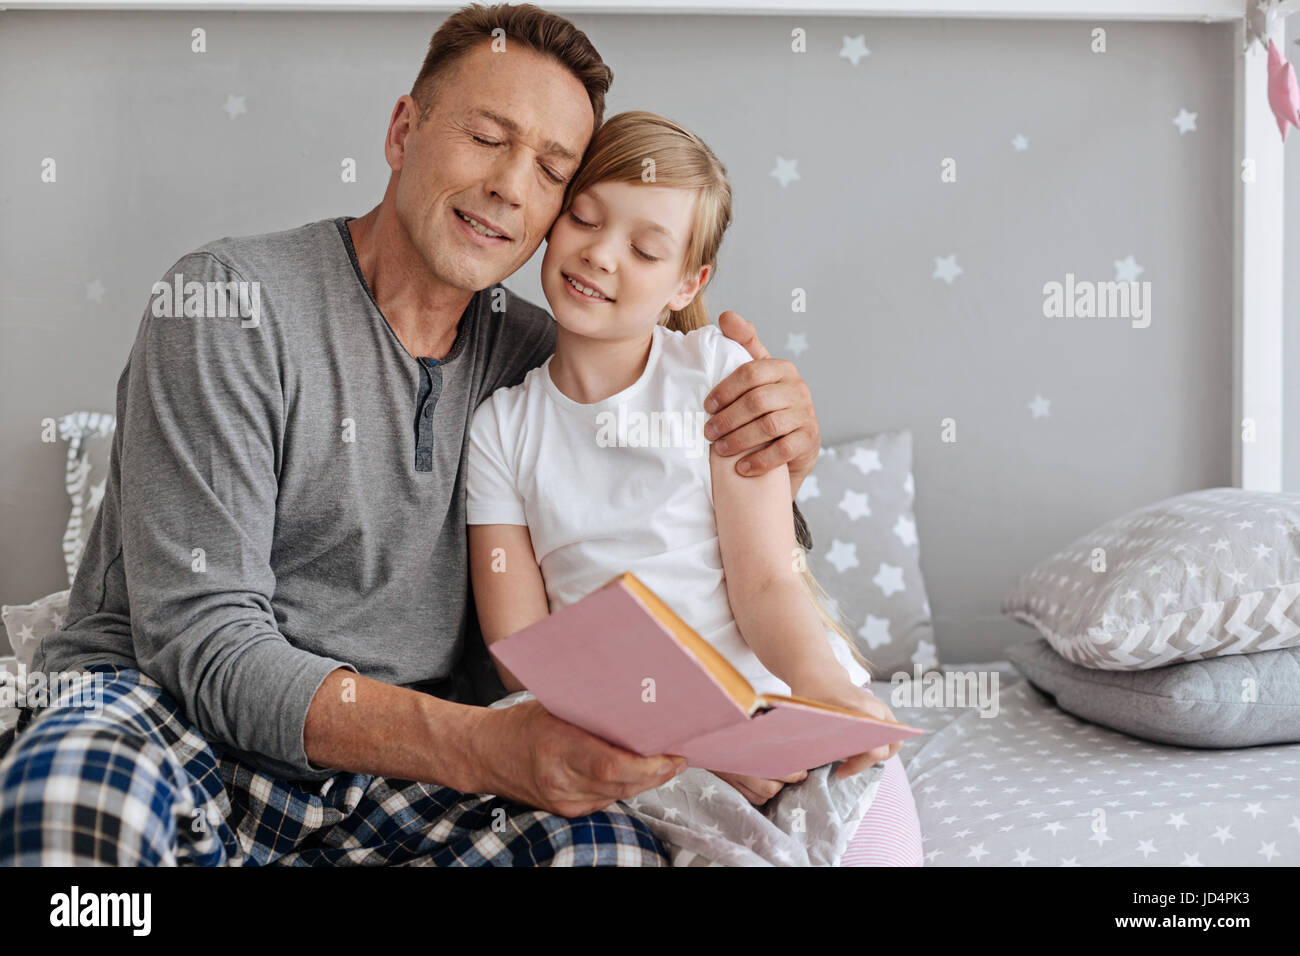 Affectionate charming father hugging his little girl - Stock Image